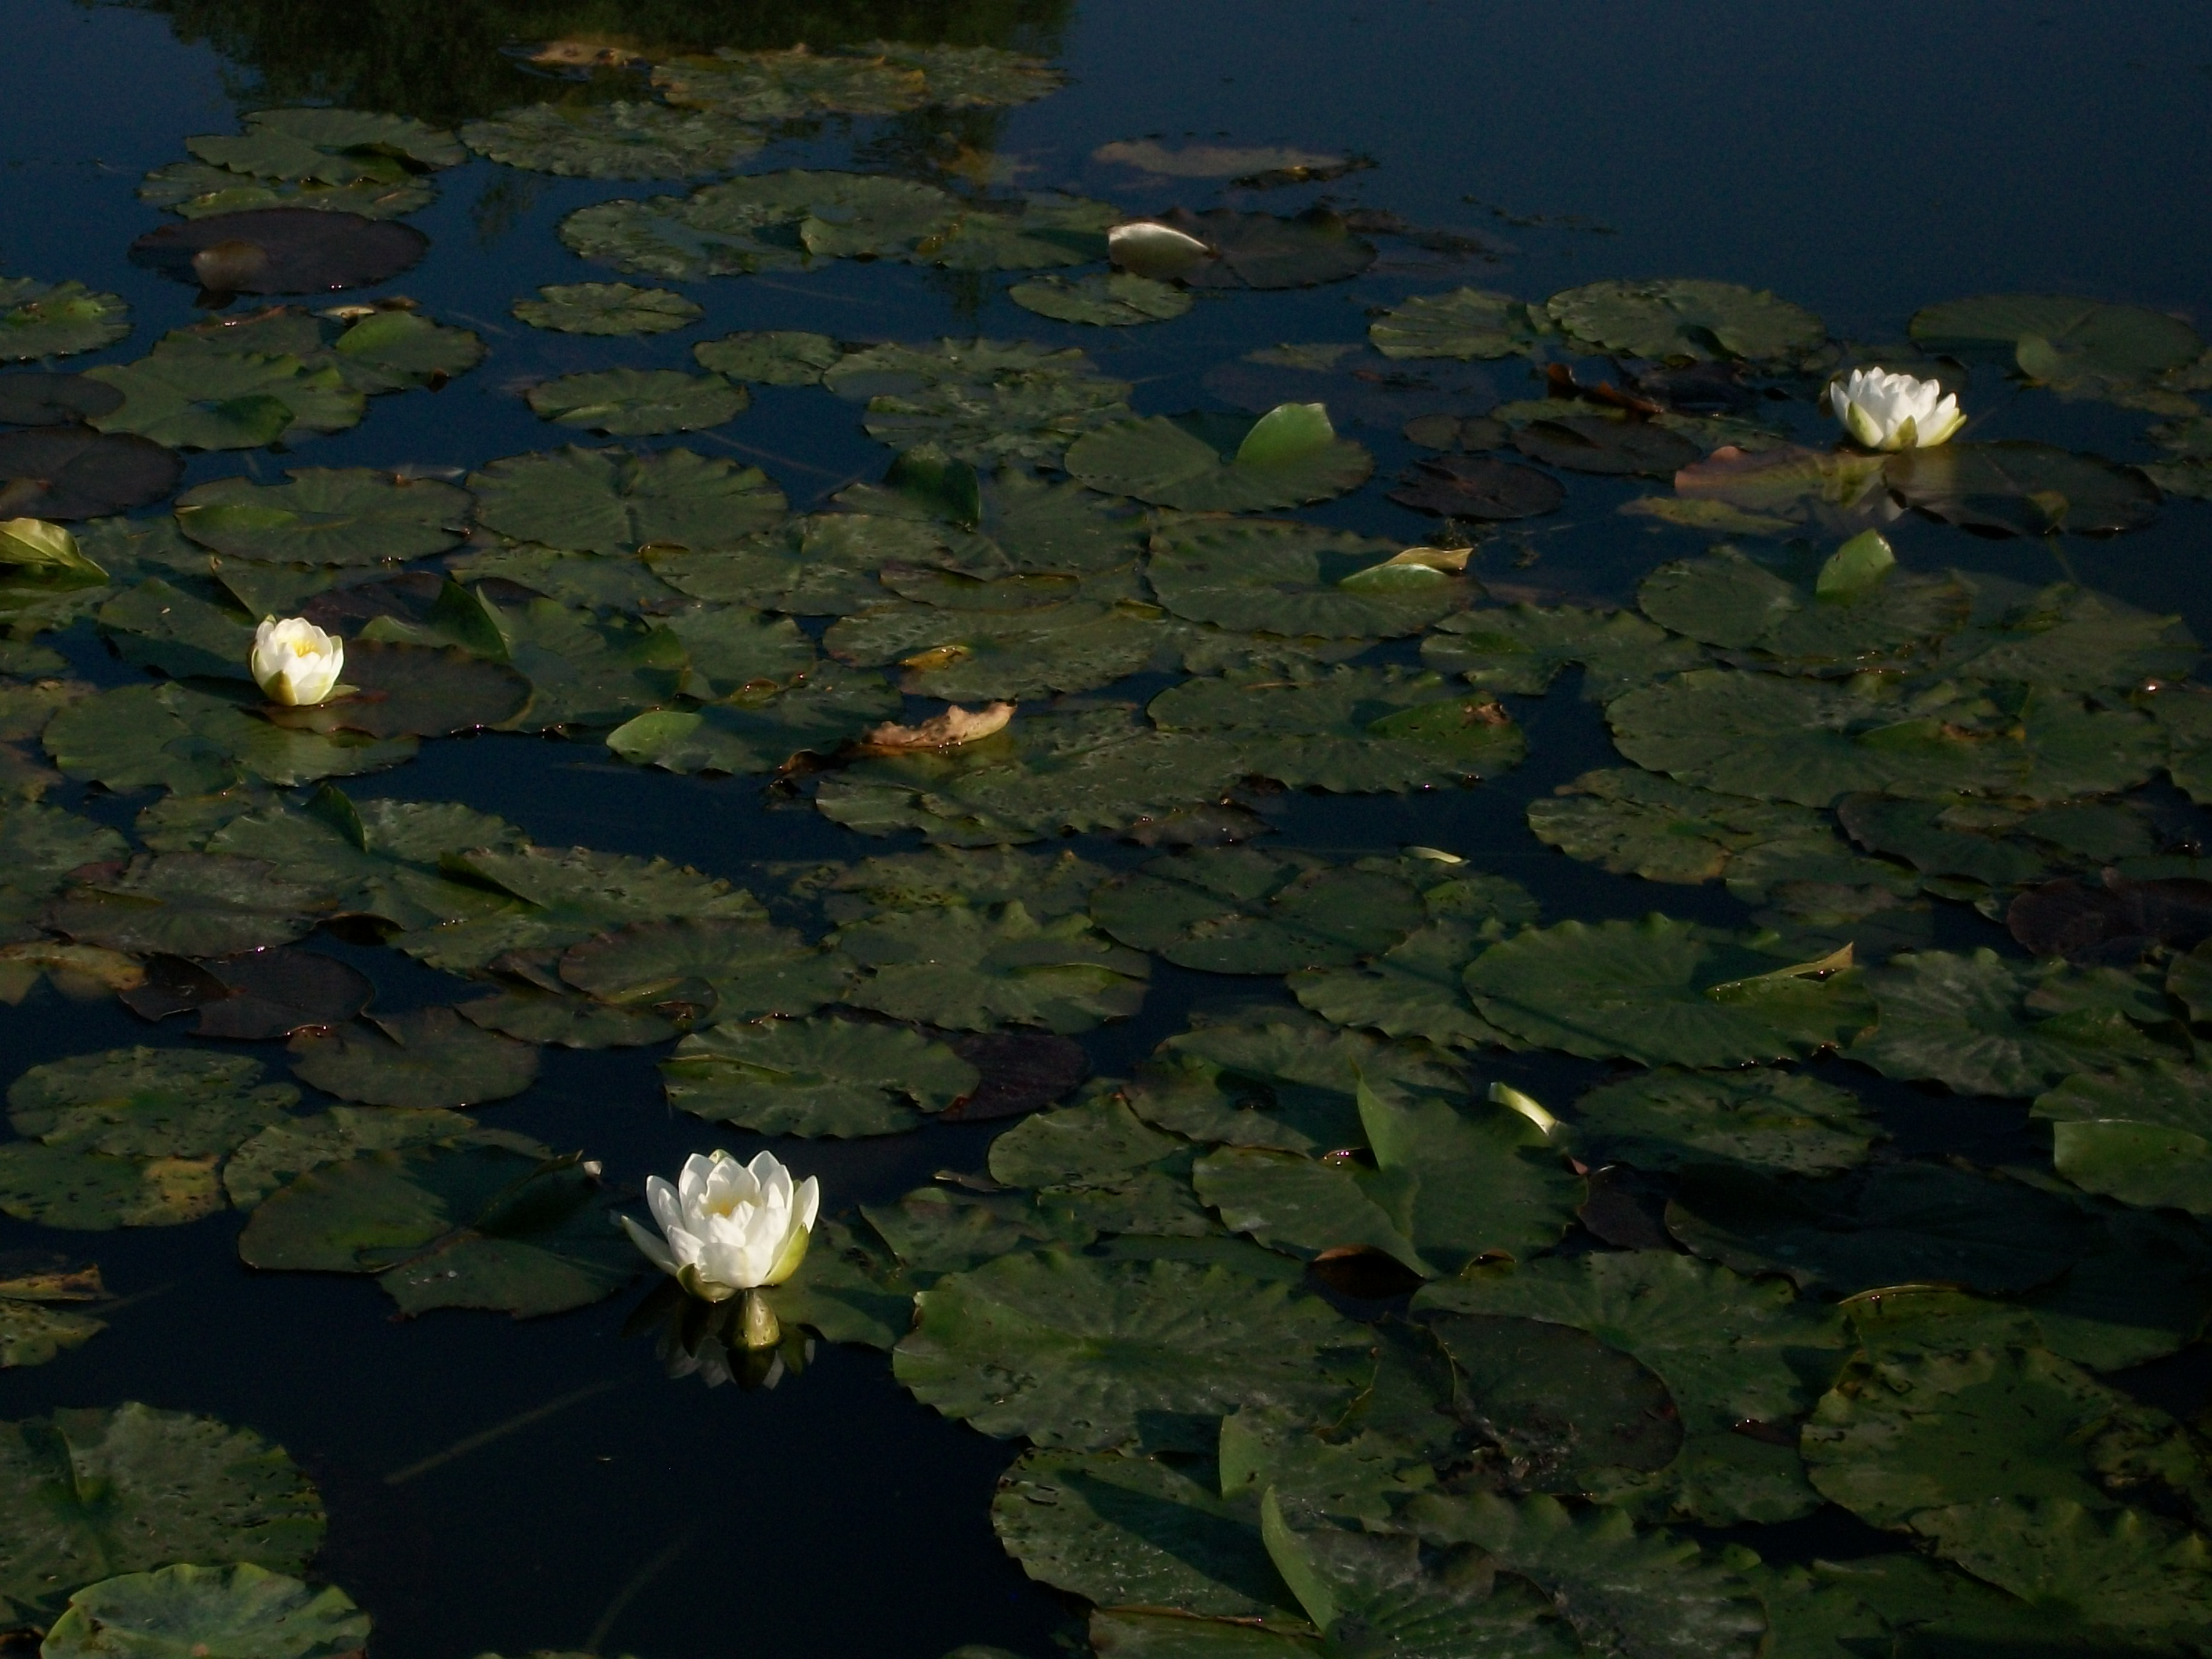 The Lotus Blossoms in Germany, Also